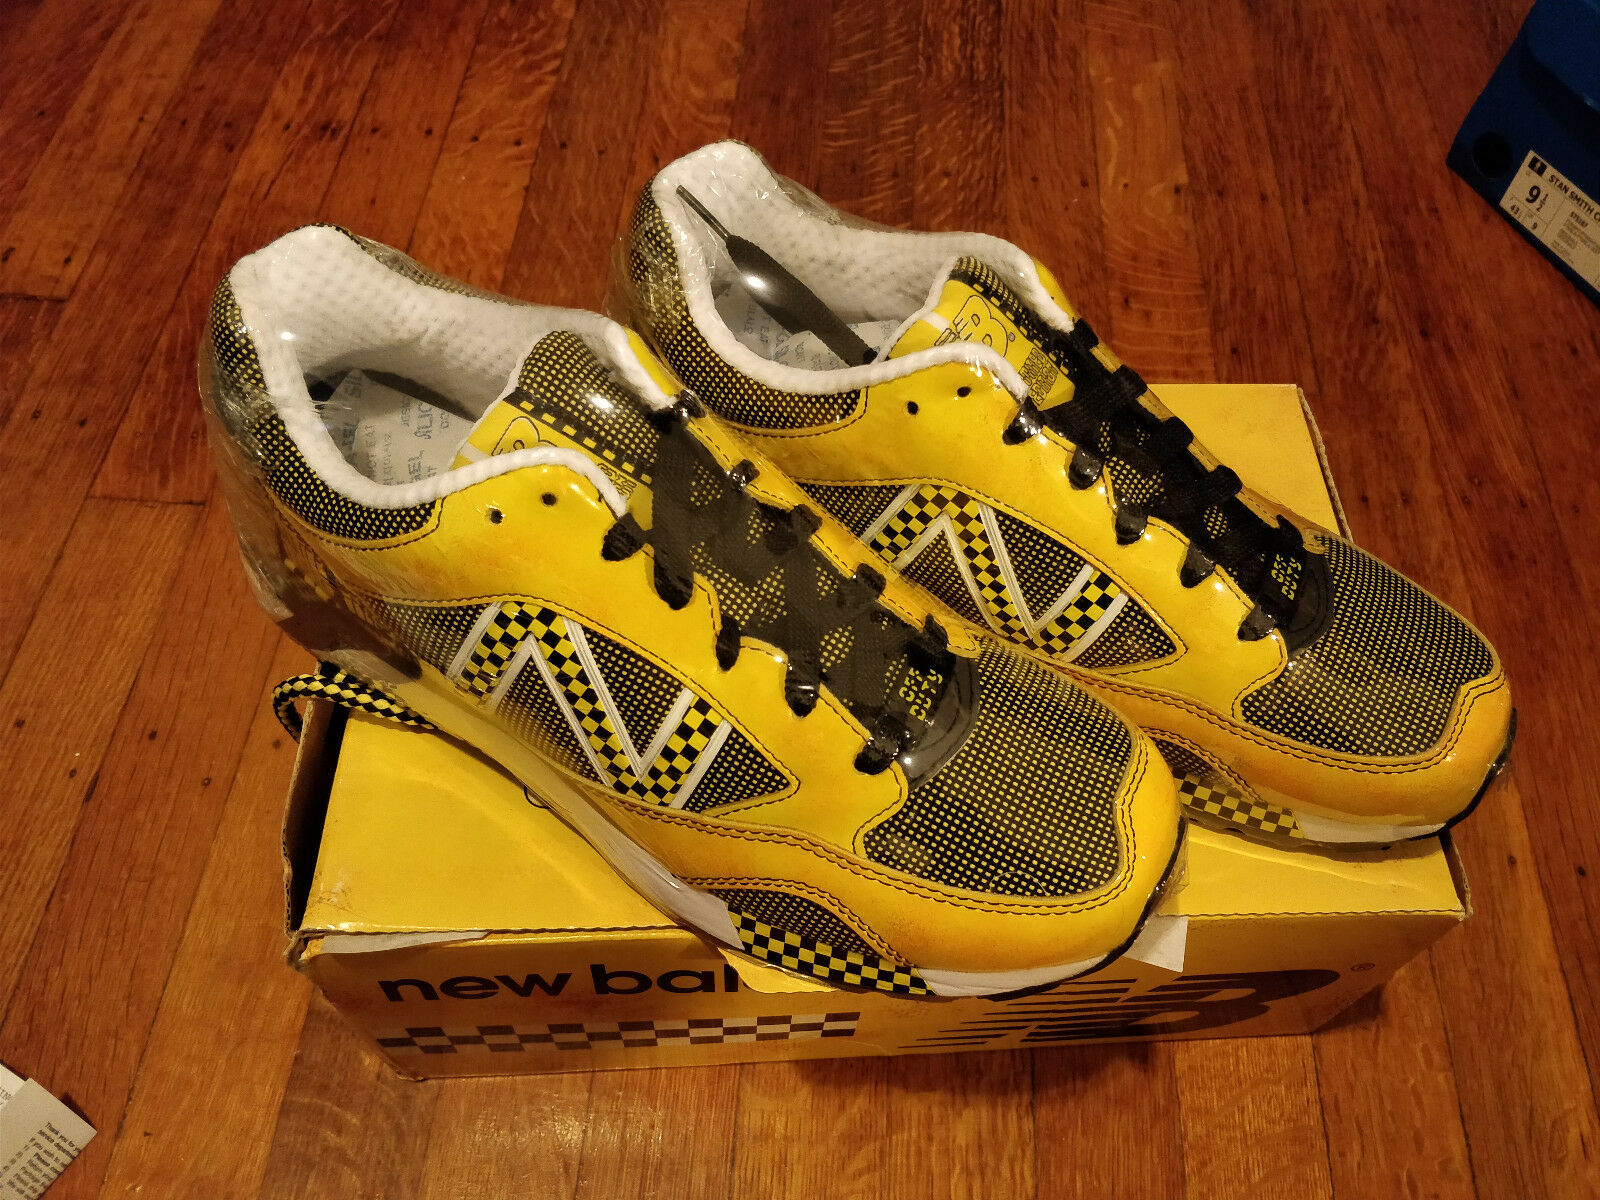 New Balance 480 Taxi LE (MRE480TX) YELLOW Size 9.5 LIMITED EDITION NEW